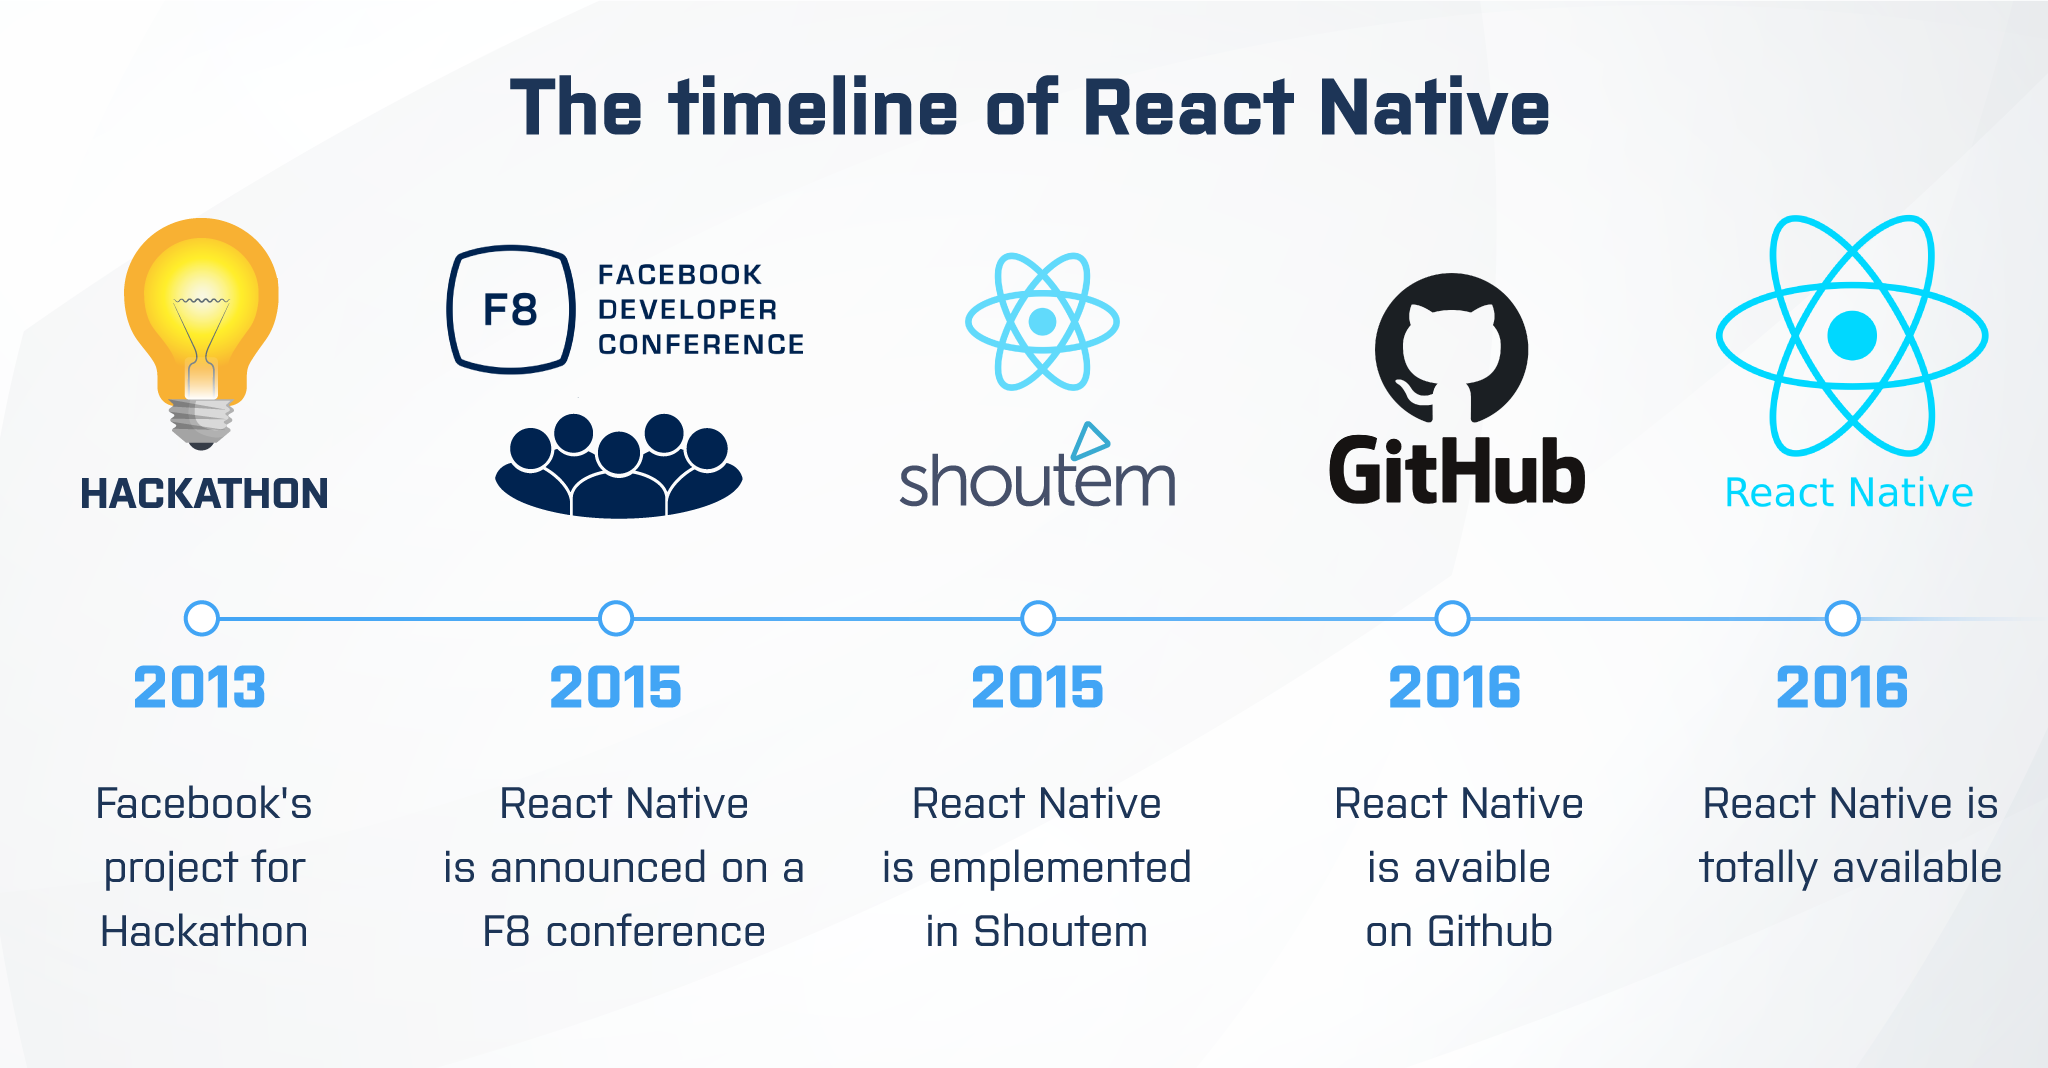 react native app development timeline